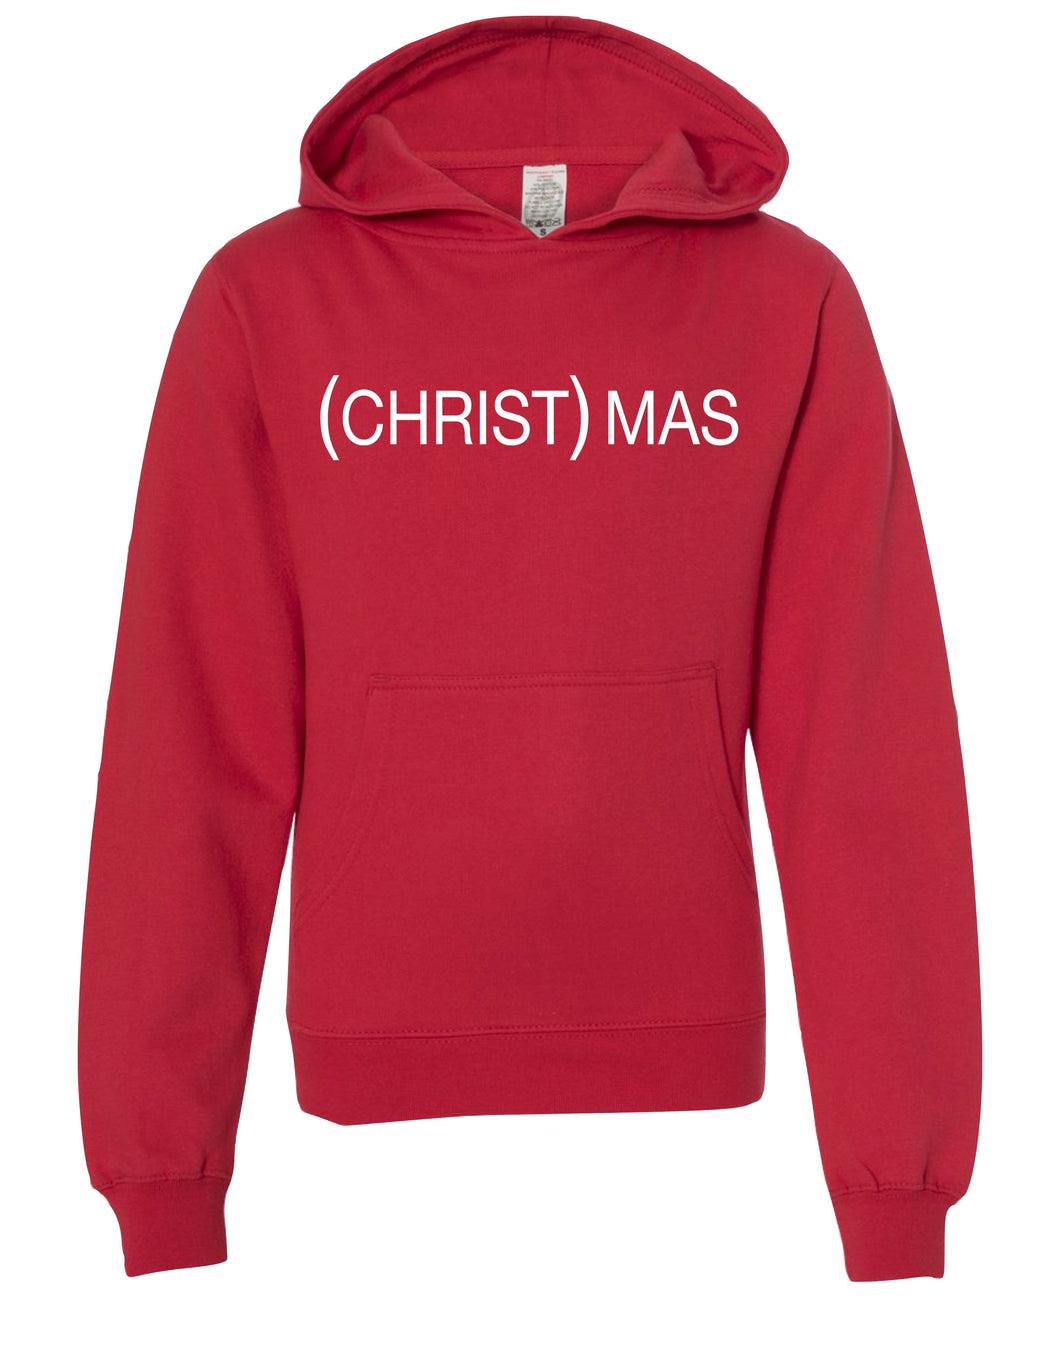 (CHRIST)MAS Red Hoody - Men's